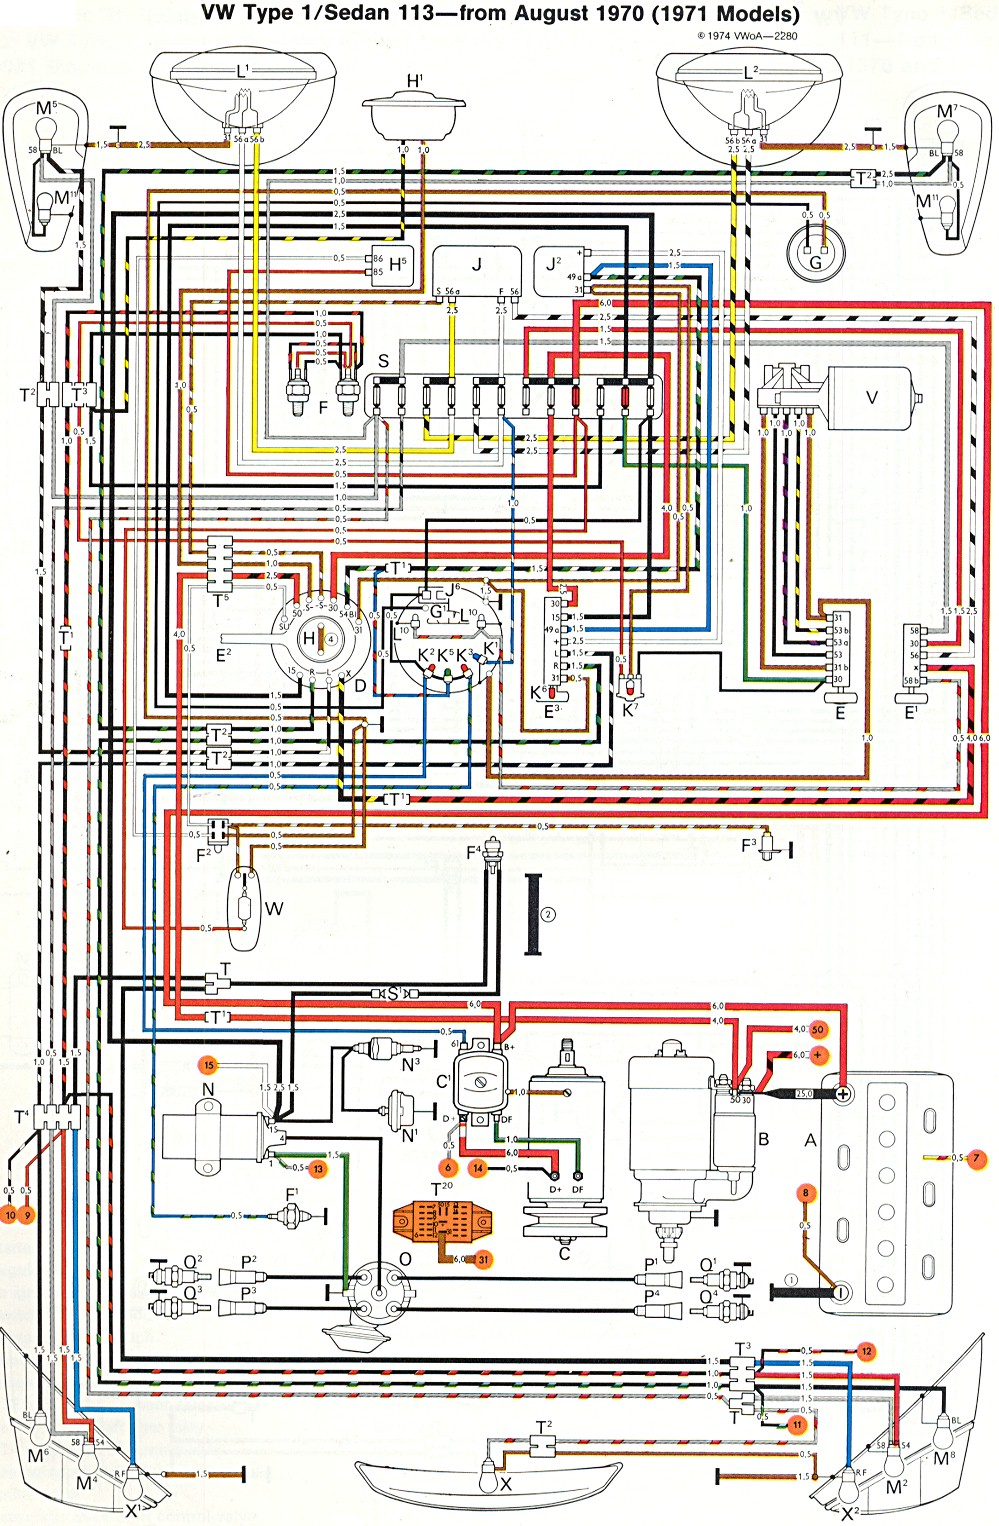 [DIAGRAM_09CH]  FEC4492 1971 Vw Wiring Diagram Colored | Wiring Resources | 2007 Vw New Beetle Wiper Motor Wiring Diagram |  | Wiring Resources